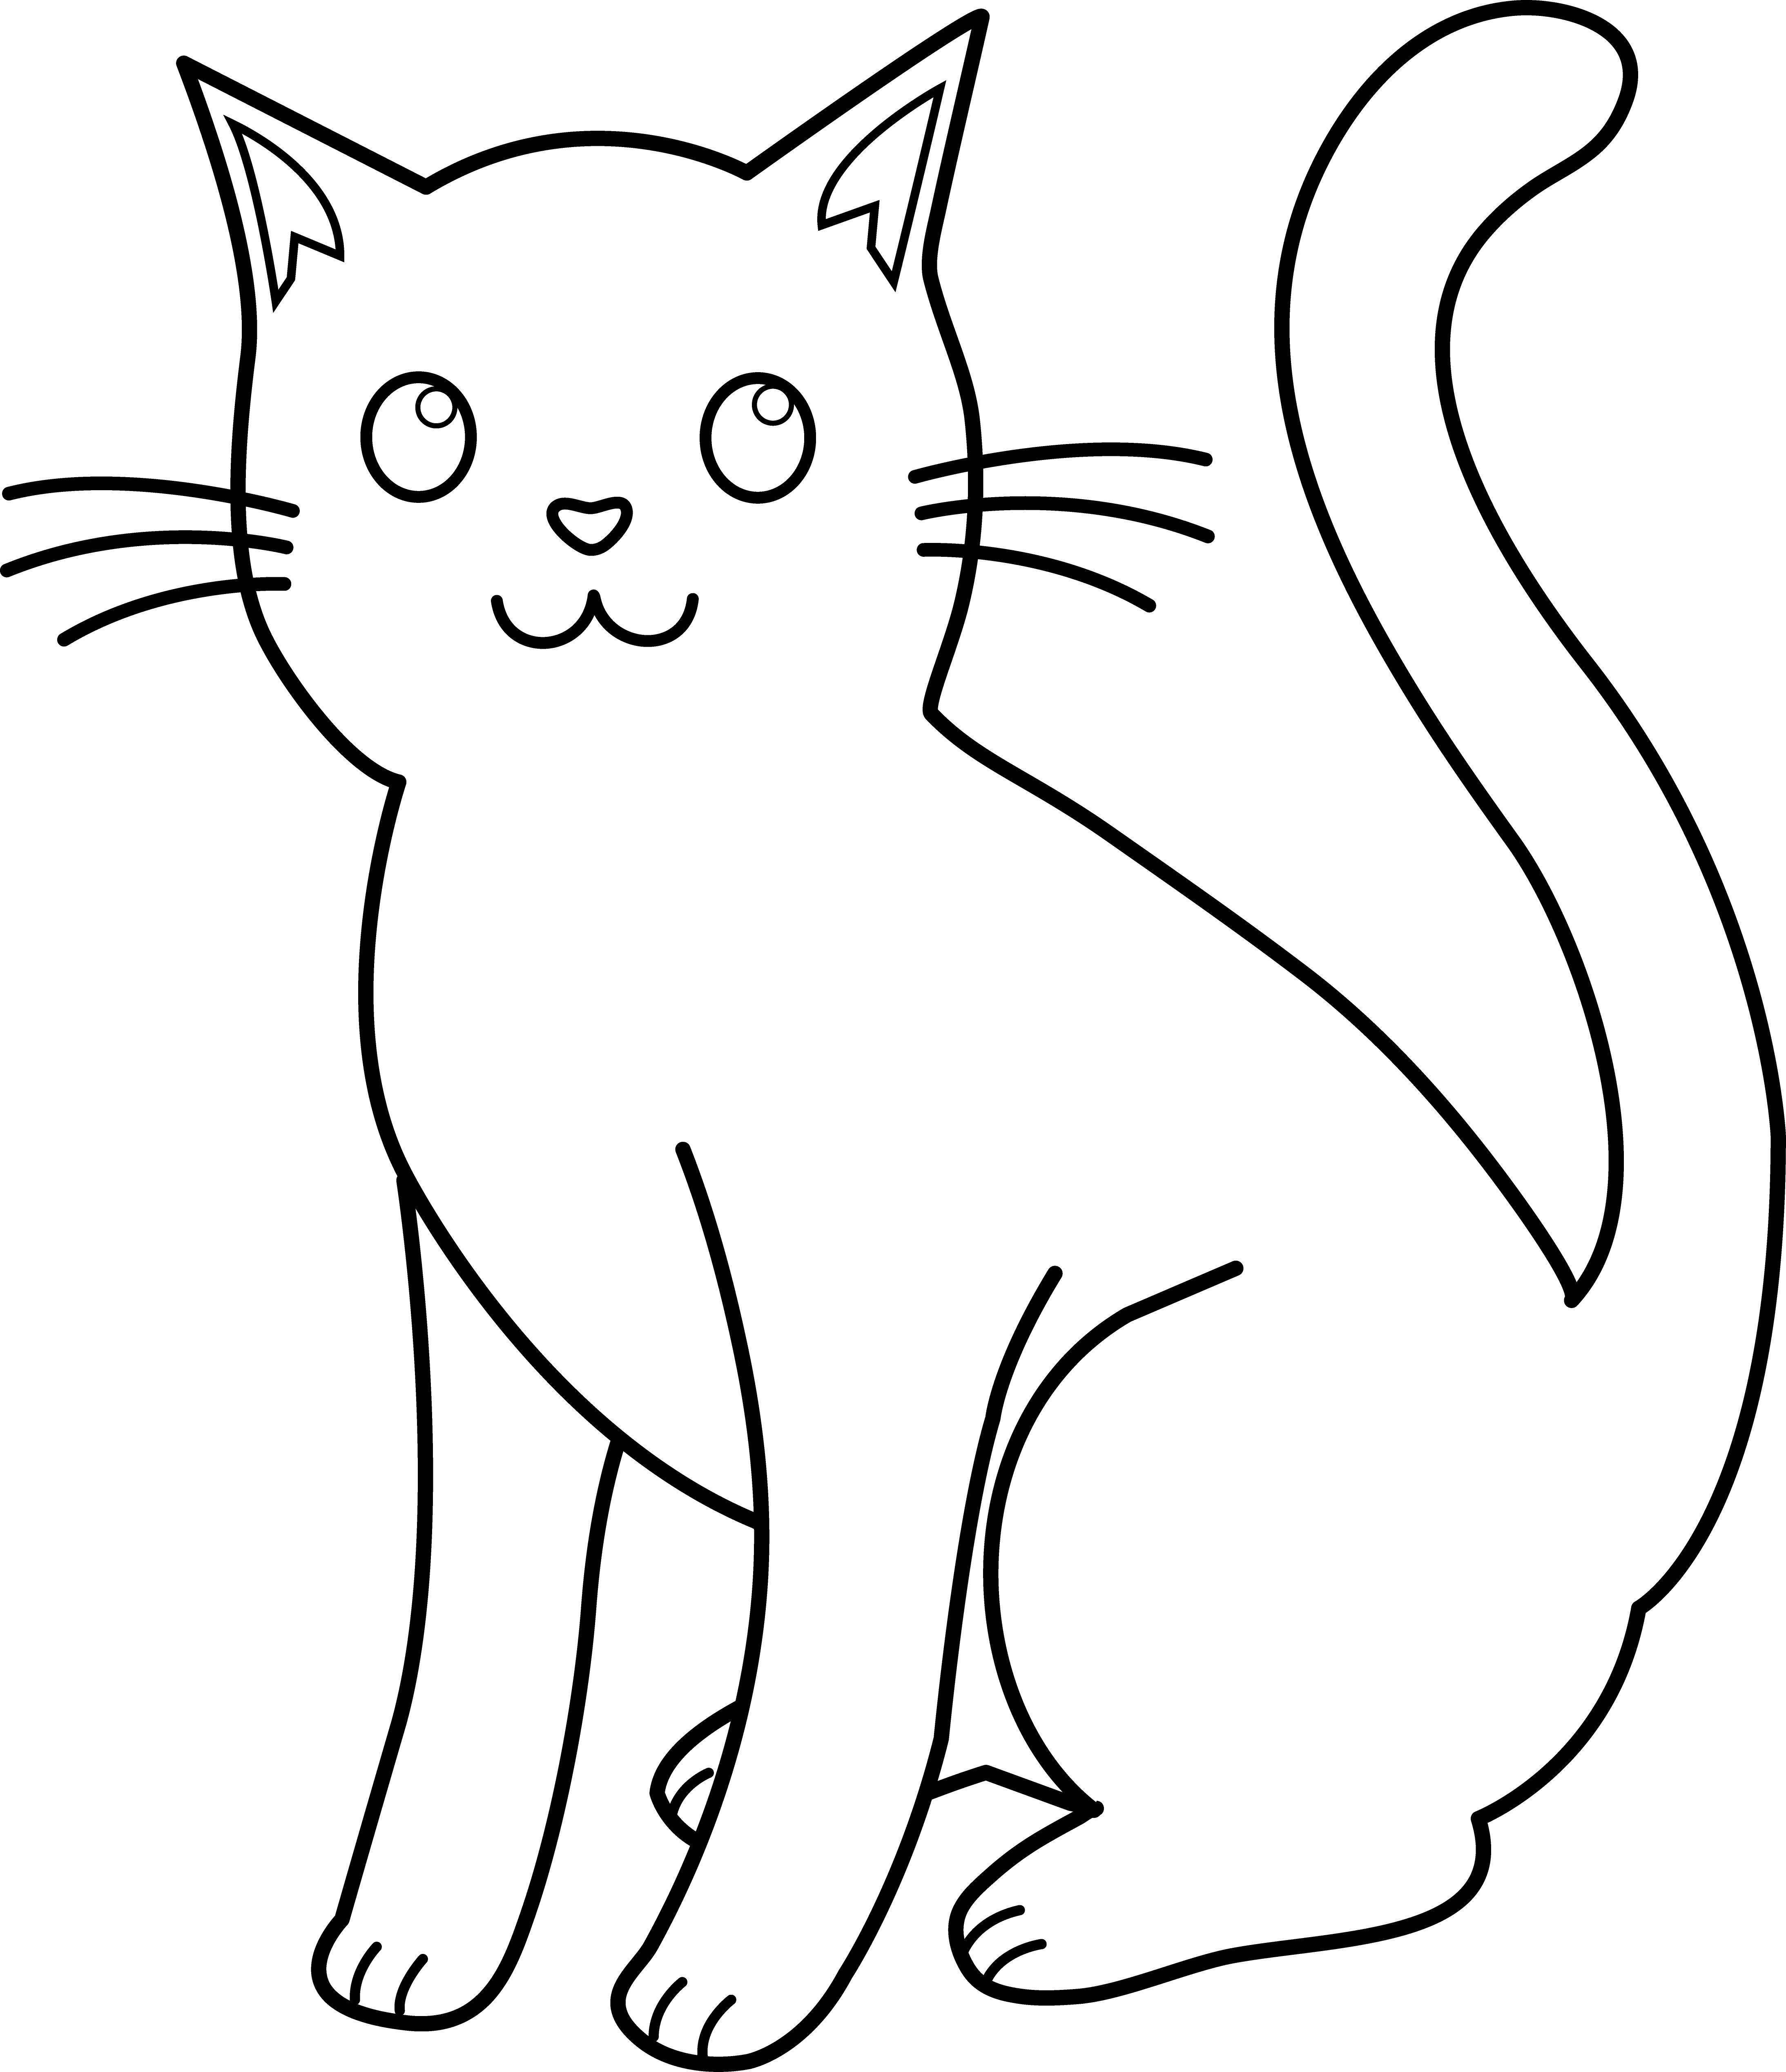 Kitty Cat Line Art For Coloring I Love Cats Cat Coloring Cat Clipart Cat Coloring Page Cats Art Drawing